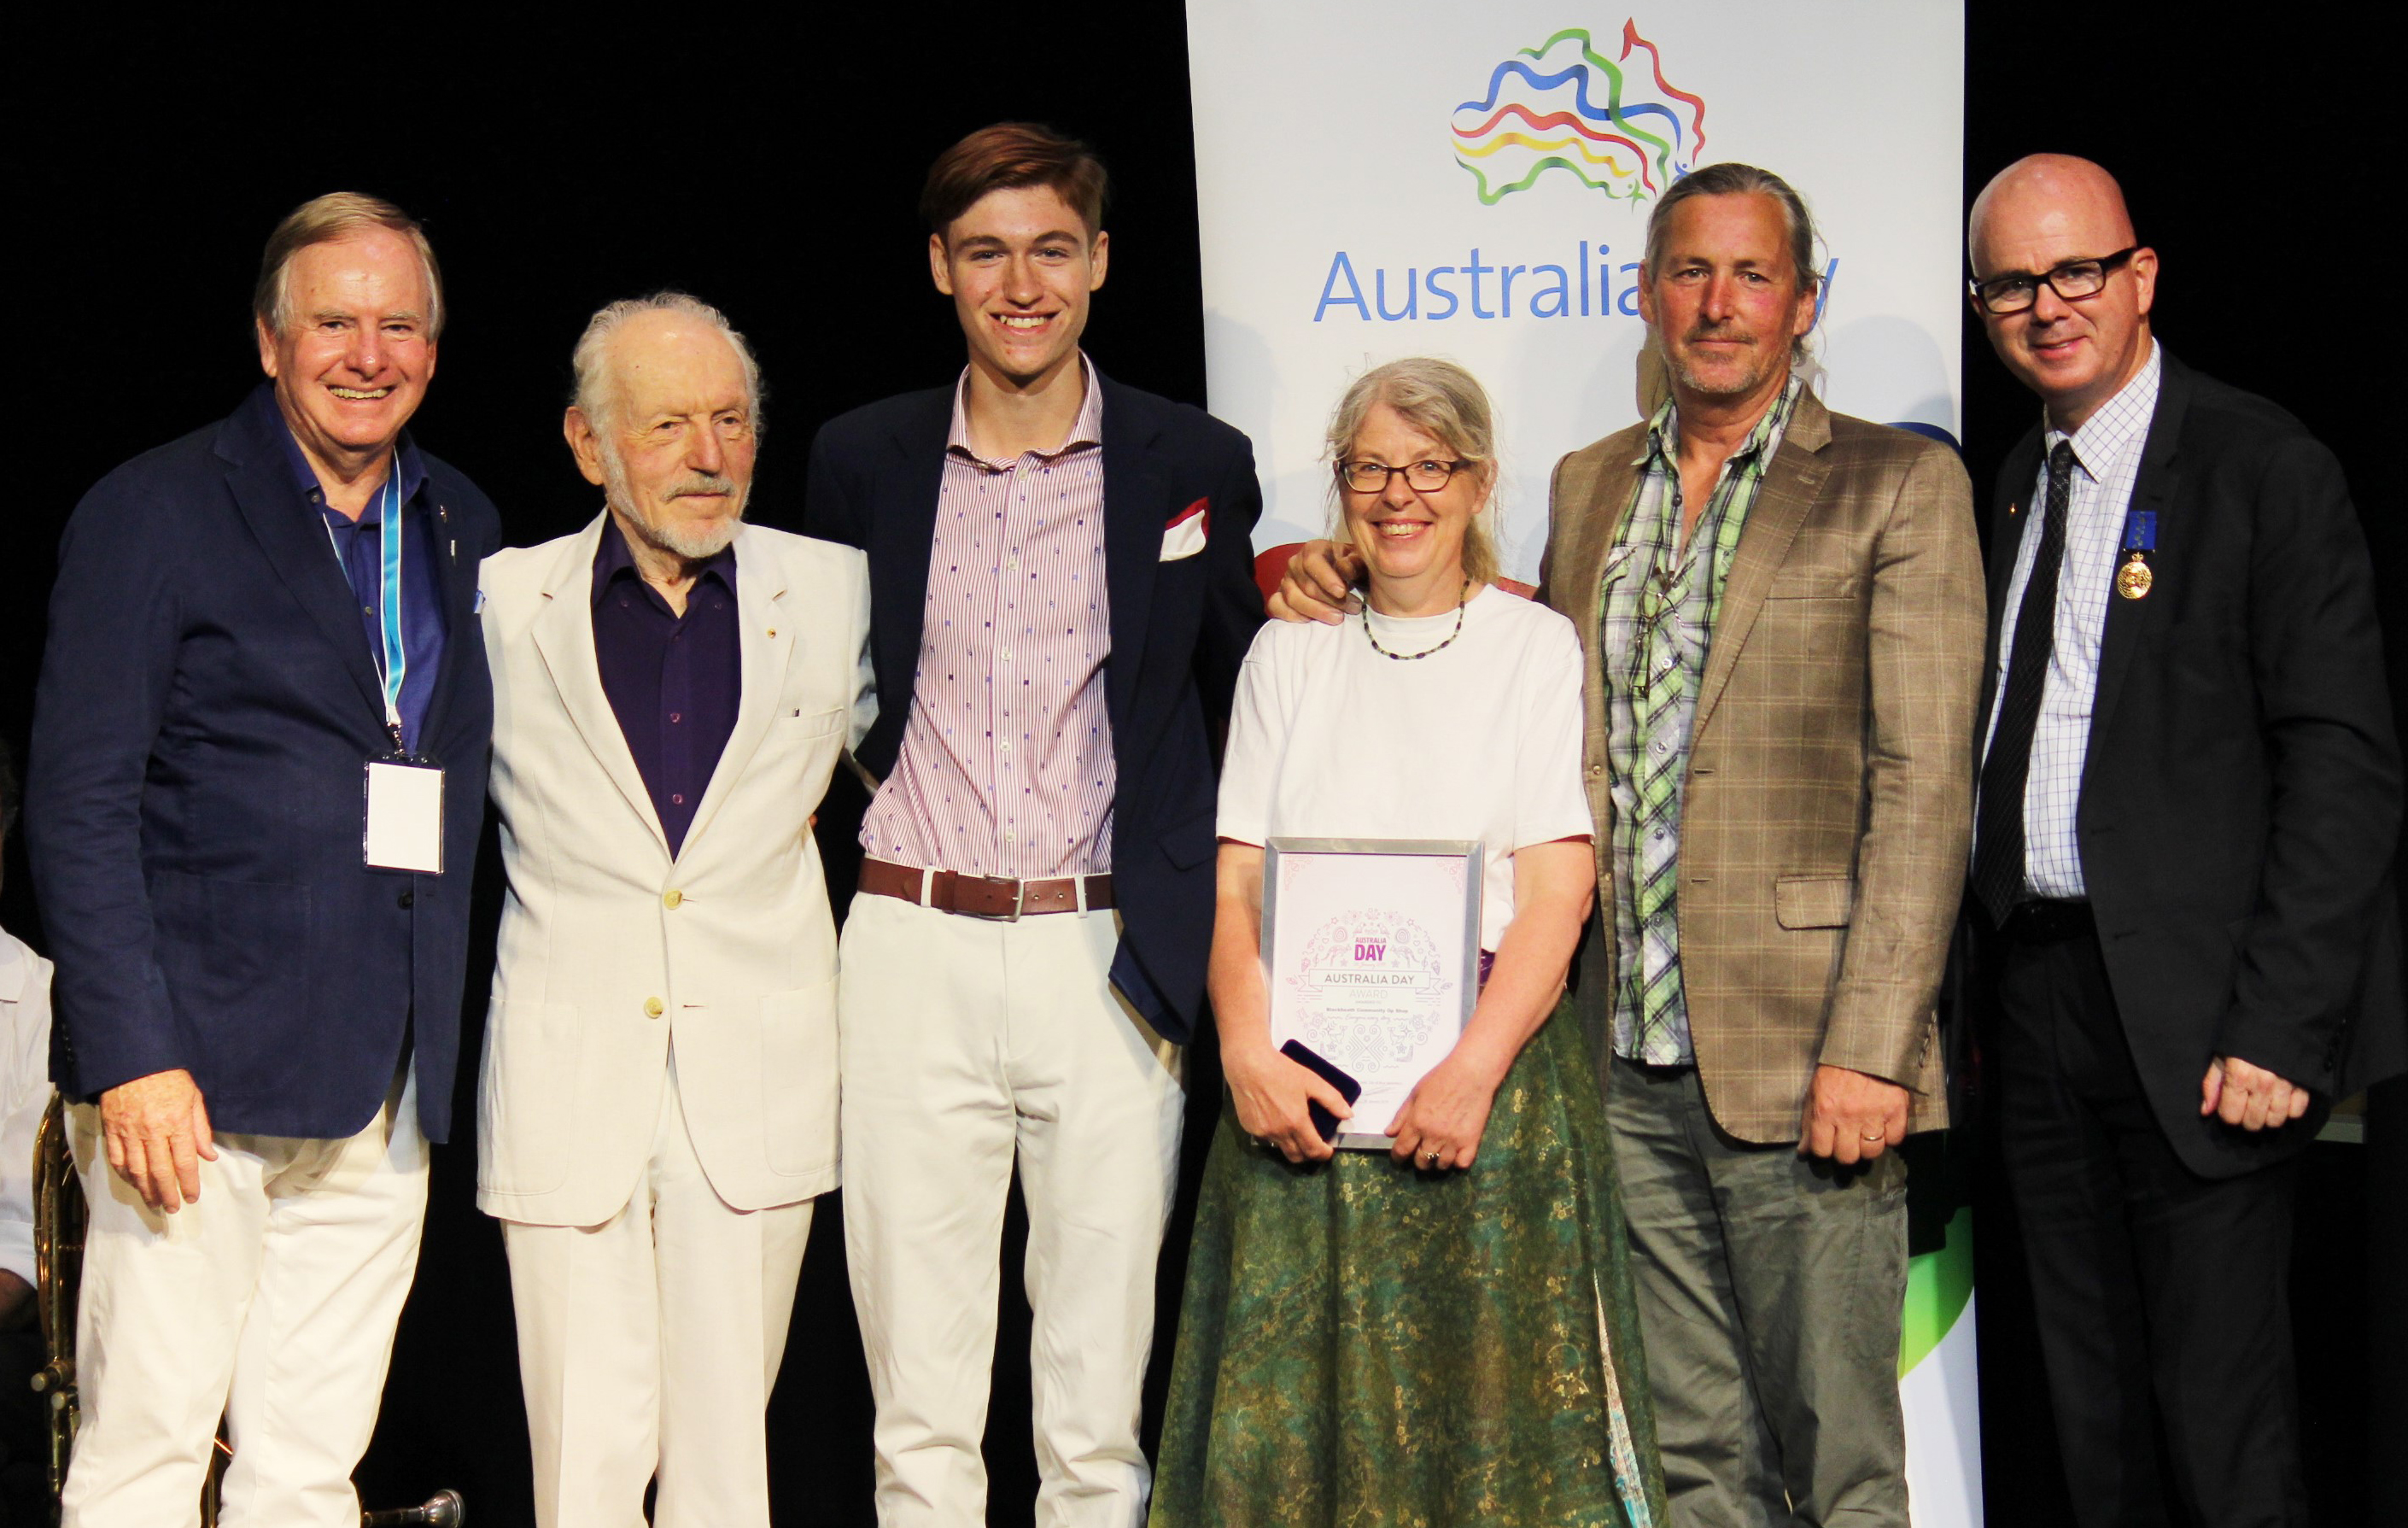 Blue Mountains Local Australia Day Award recipients with the mayor